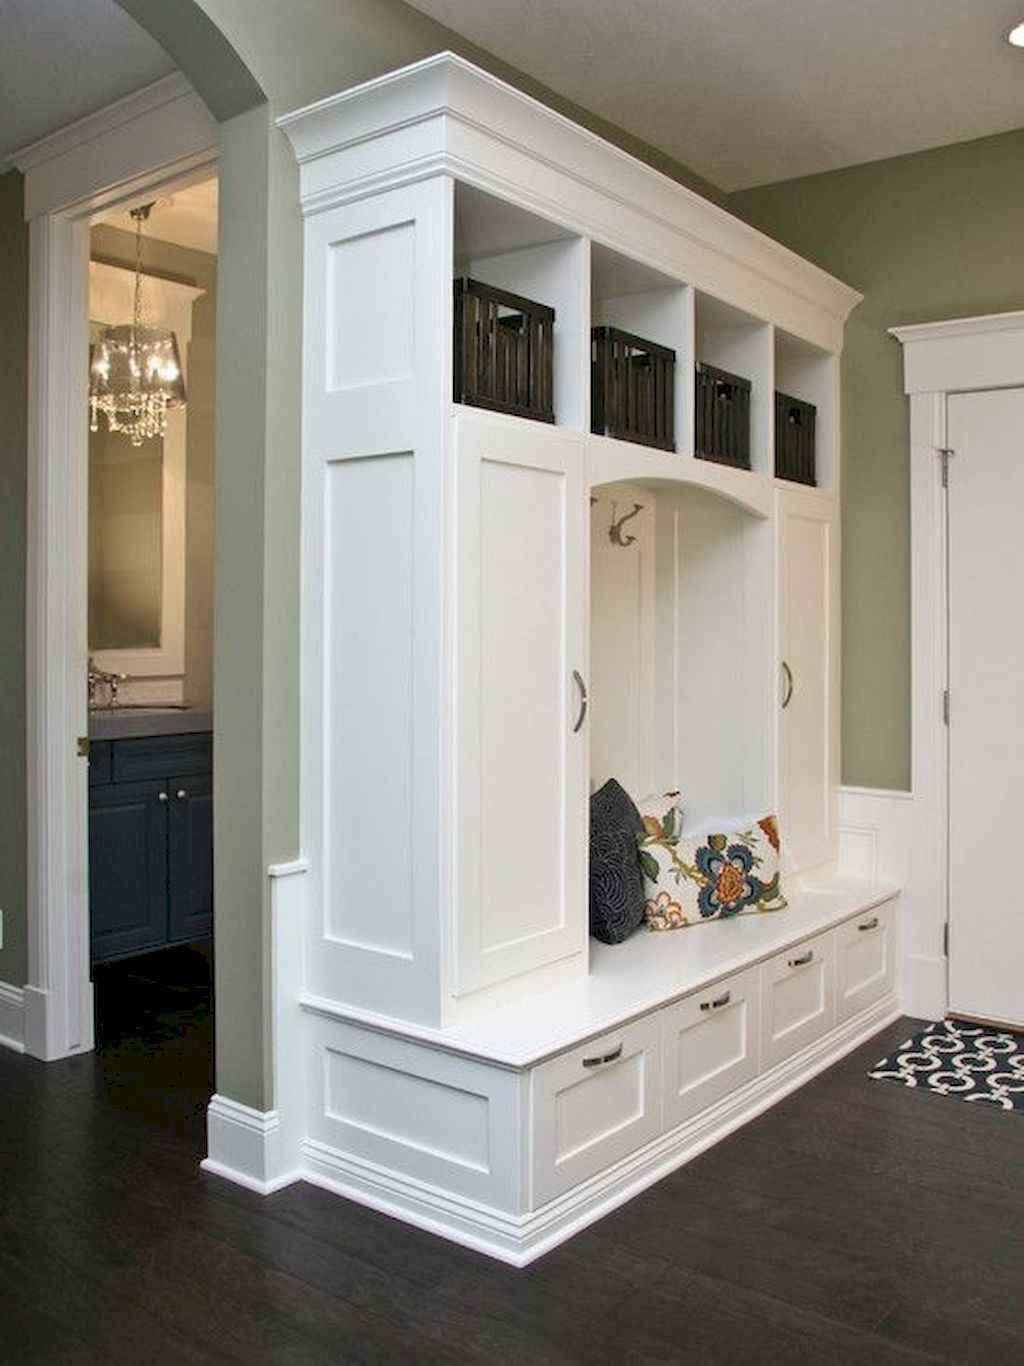 65 Cool Mudroom Design Ideas and Remodel (18)